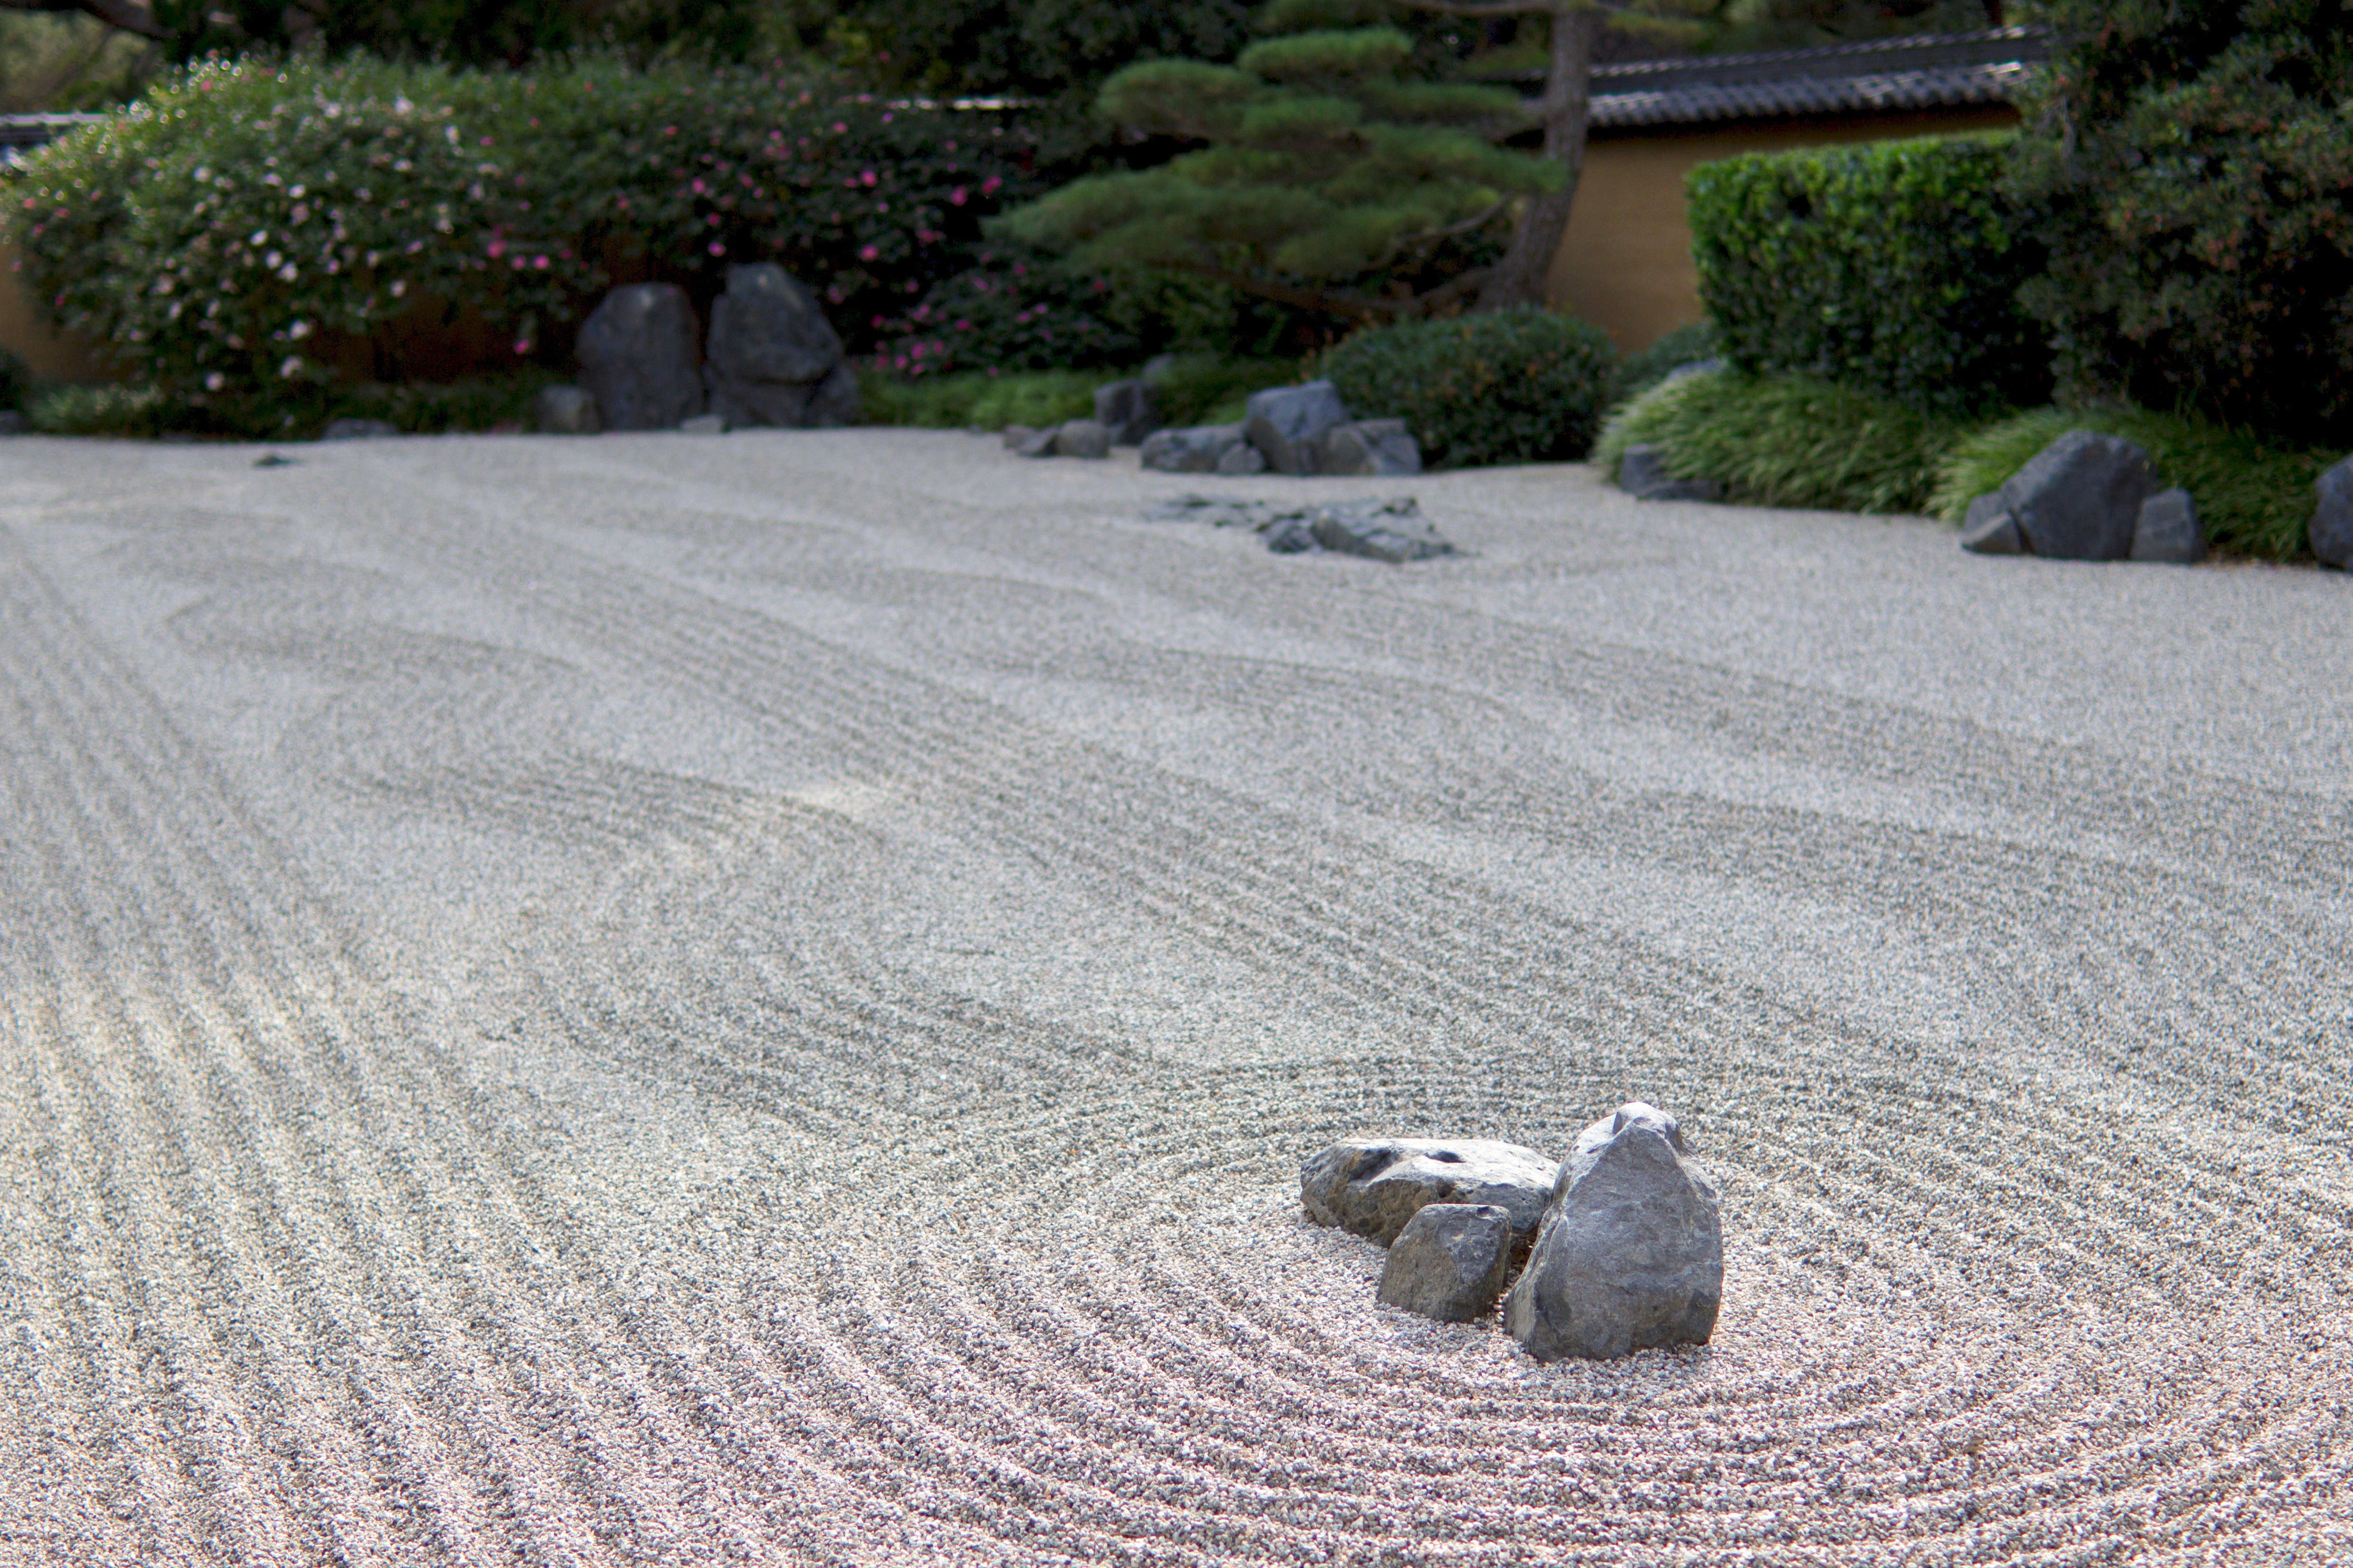 10 Garden Ideas to Steal from Japanese Zen Masters - Gardenista on passion house plans, red house plans, united states house plans, art house plans, light house plans, japanese house plans, spirit house plans, the not so big house plans, angel house plans, nature house plans, spa house plans, home house plans, design house plans, star house plans, living off the grid house plans, haiku house plans, harmony house plans, love house plans, tibet house plans, feng shui house plans,